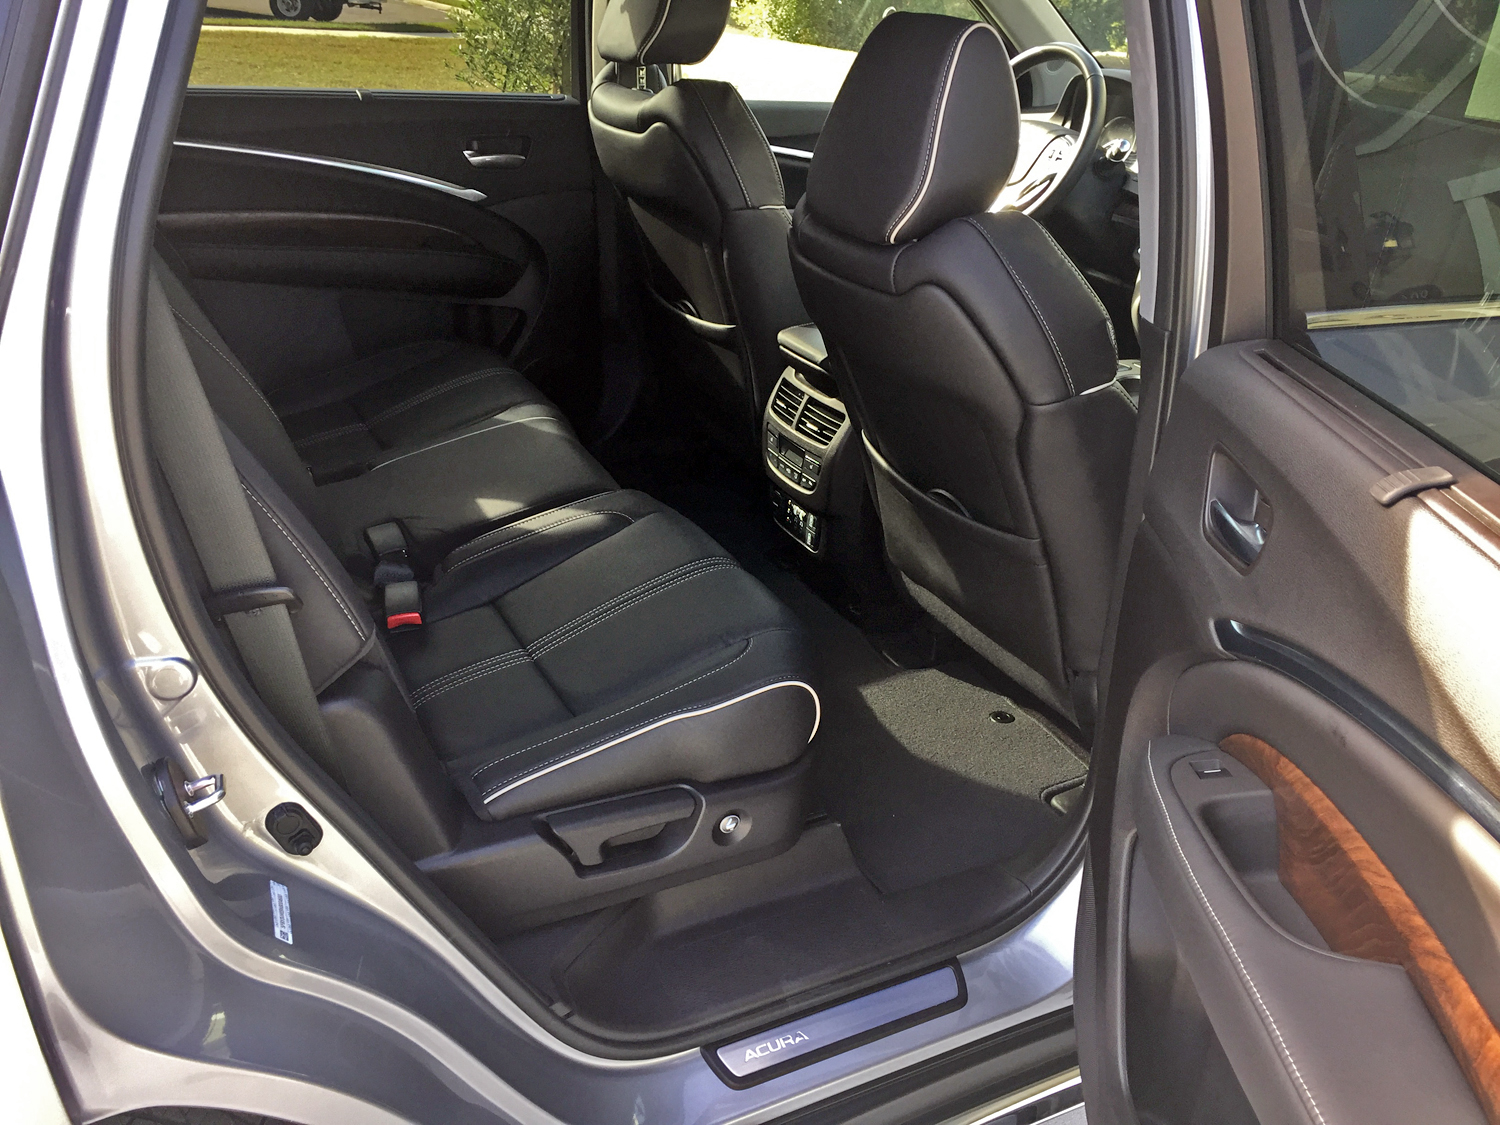 2017 acura mdx quick look rear seats gallery 698767 top speed. Black Bedroom Furniture Sets. Home Design Ideas